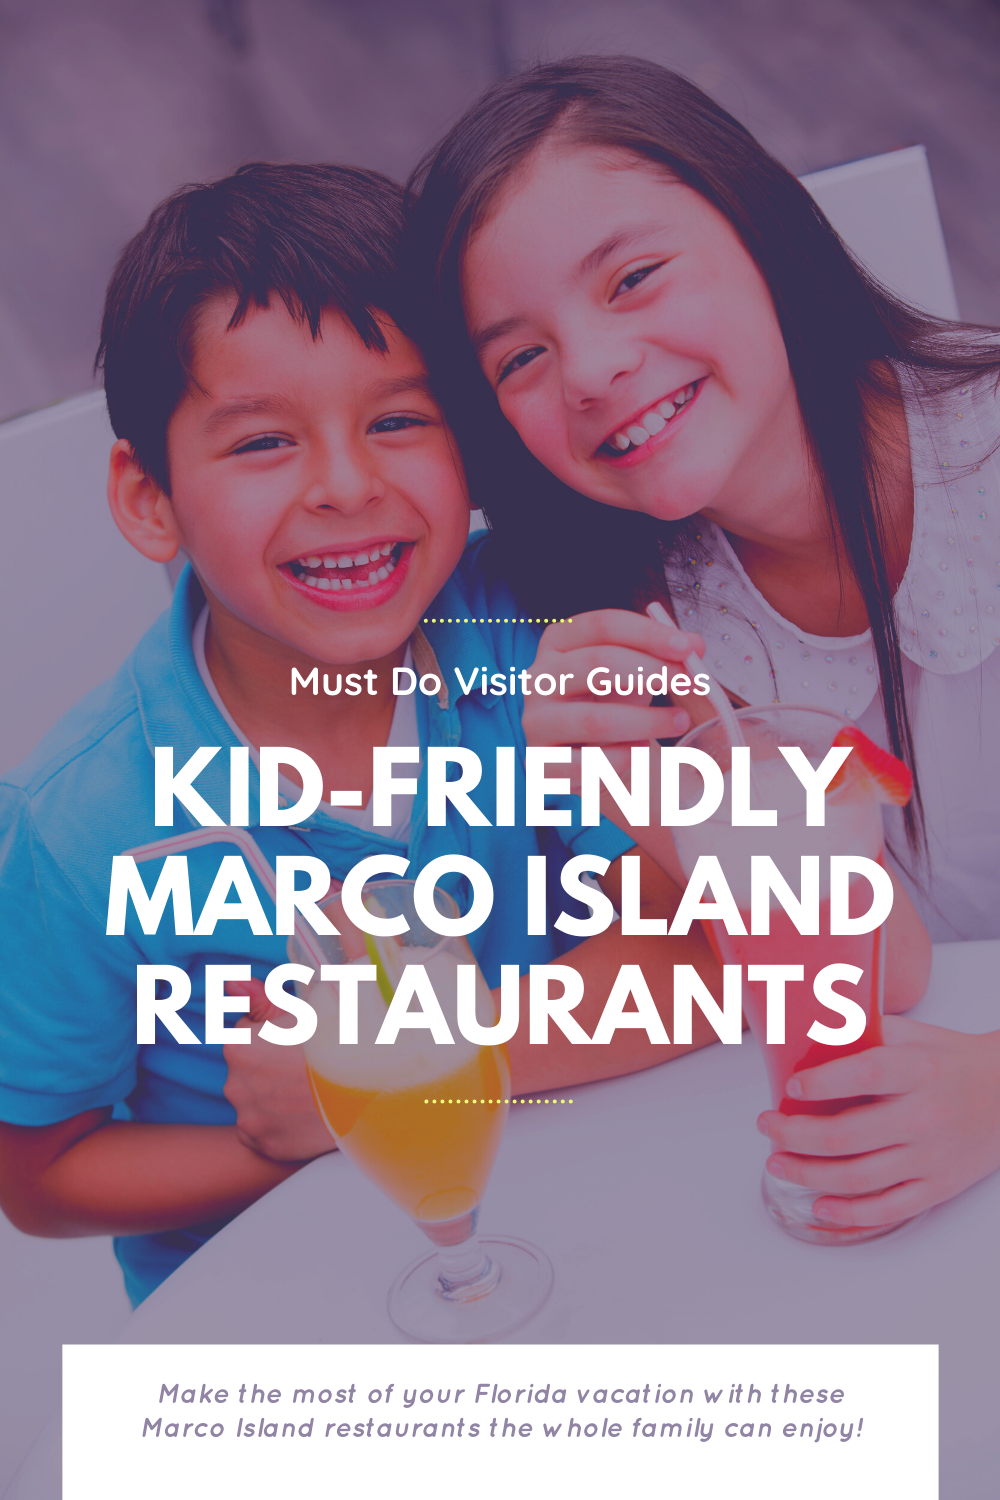 Must Do Visitor Guides Kid-Friendly Marco Island Restaurants. Make the most of your Florida vacation with these Marco Island Restaurants the whole family can enjoy!